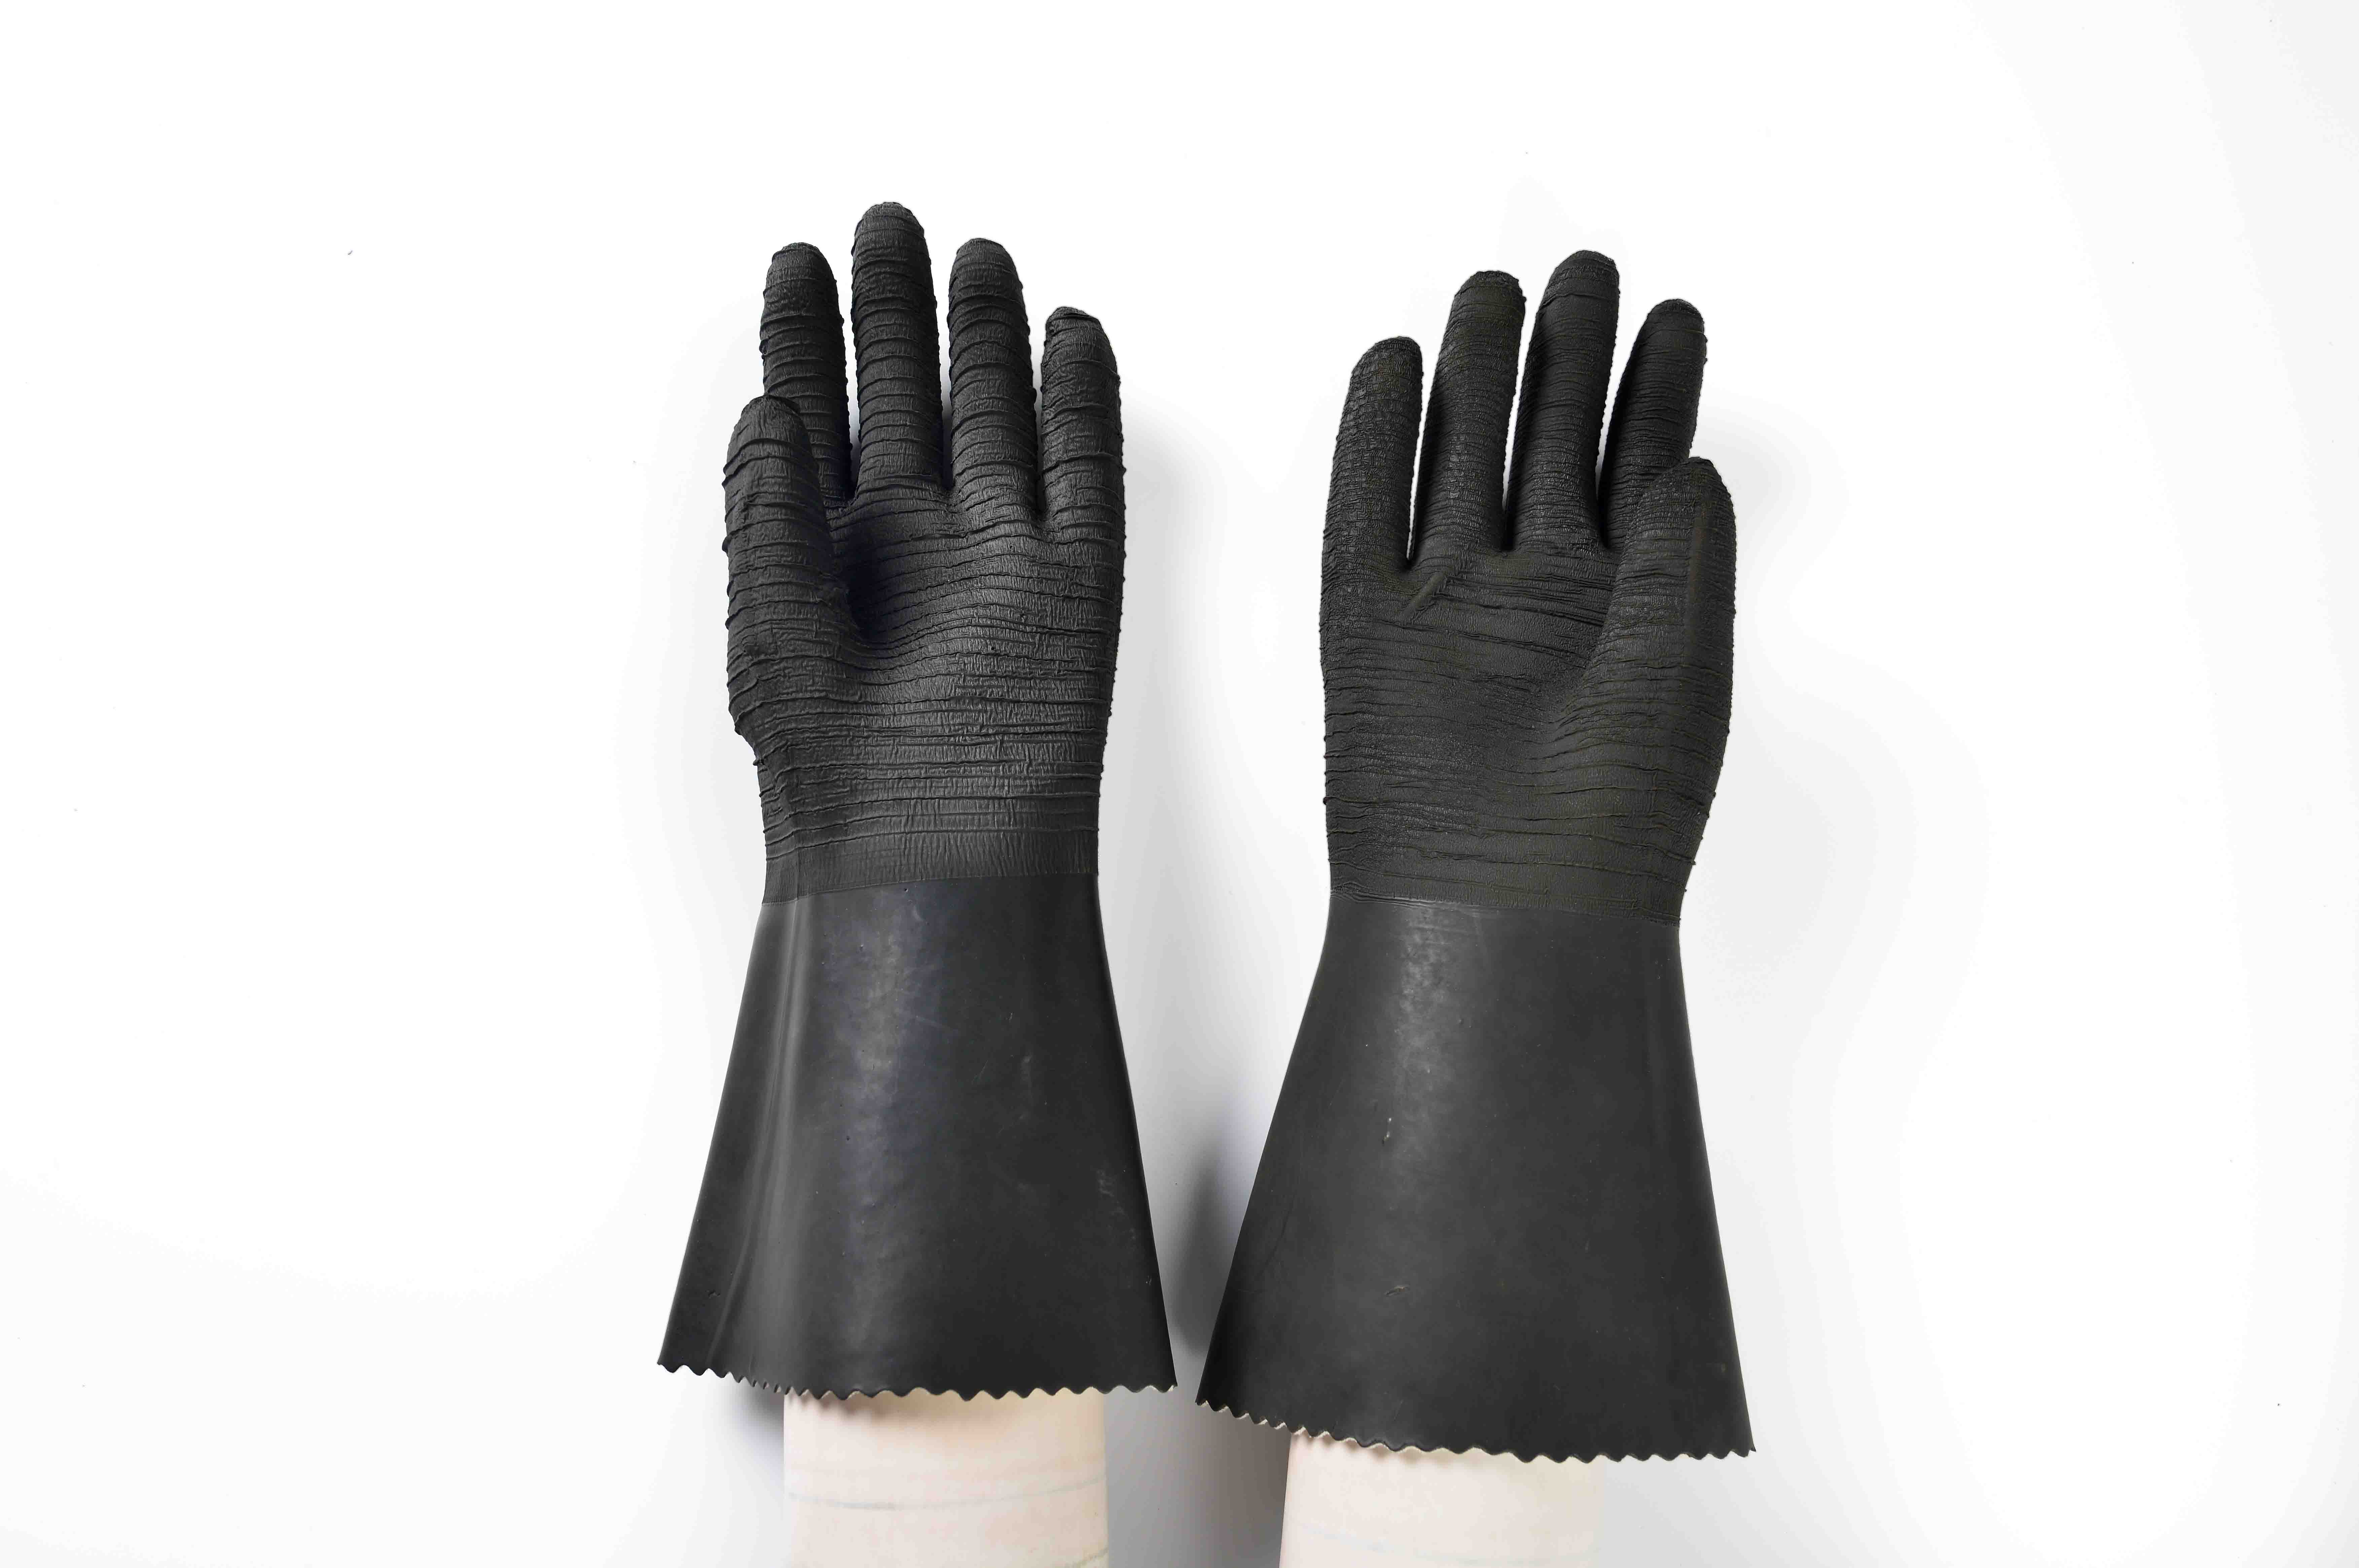 Professional High Quality 14″ rubber glove with cotton linning-rough finish Mozambique Factory